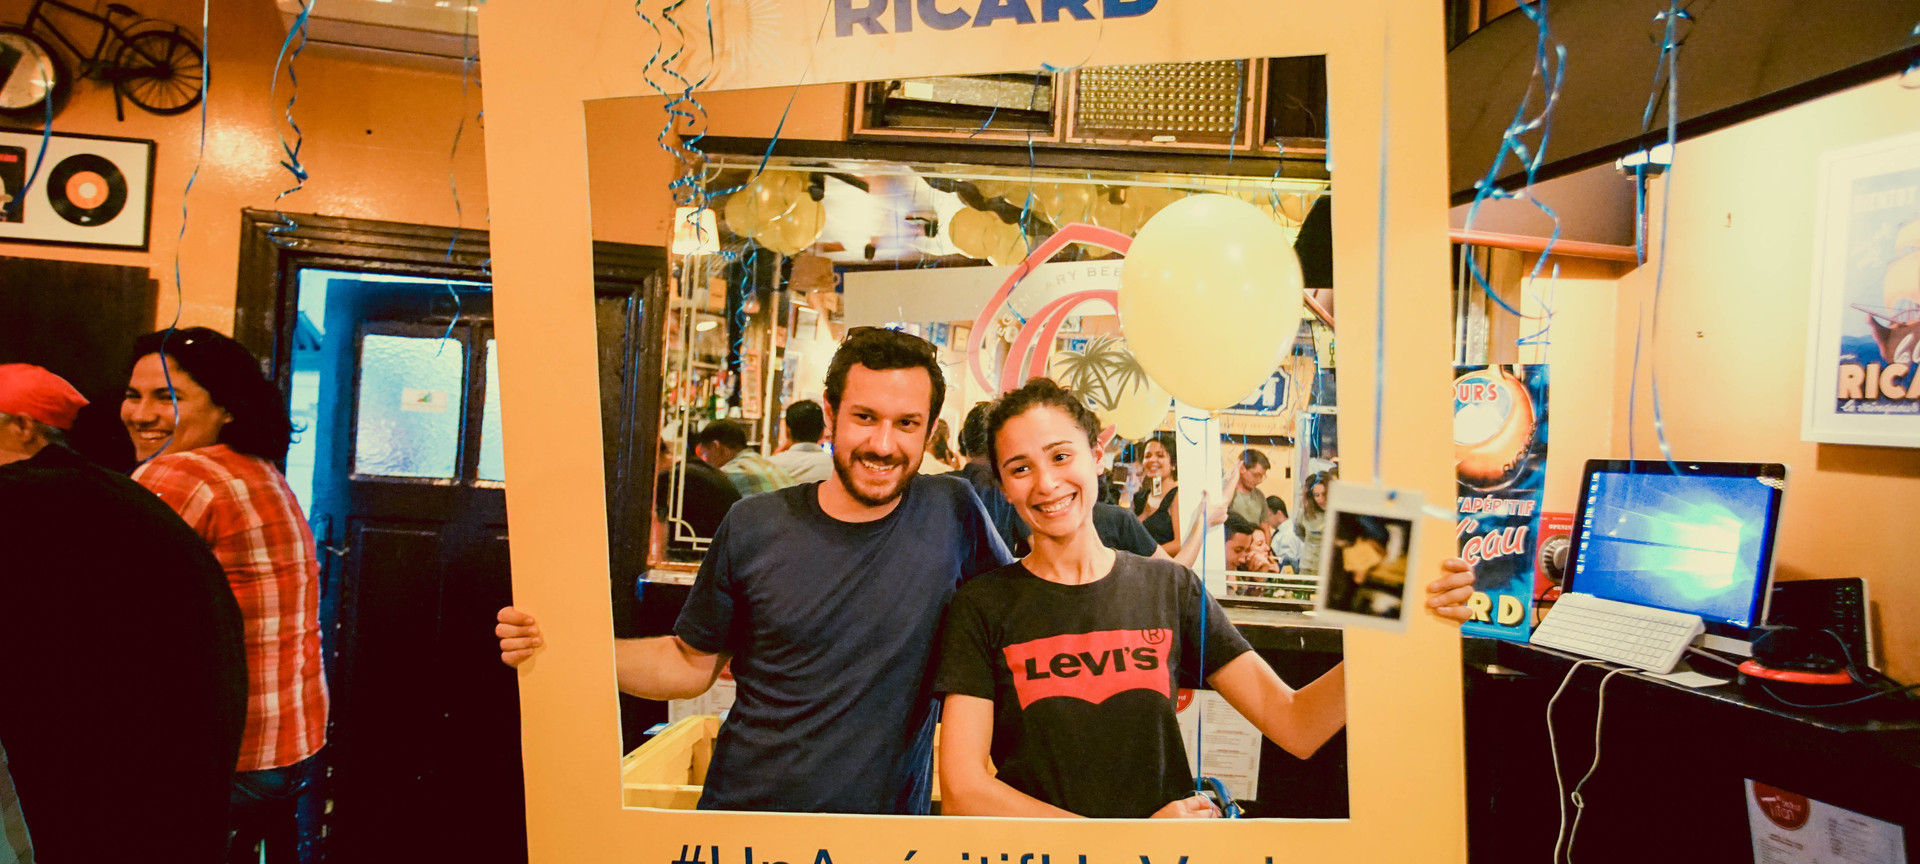 Activations Ricard - PERNOD RICARD